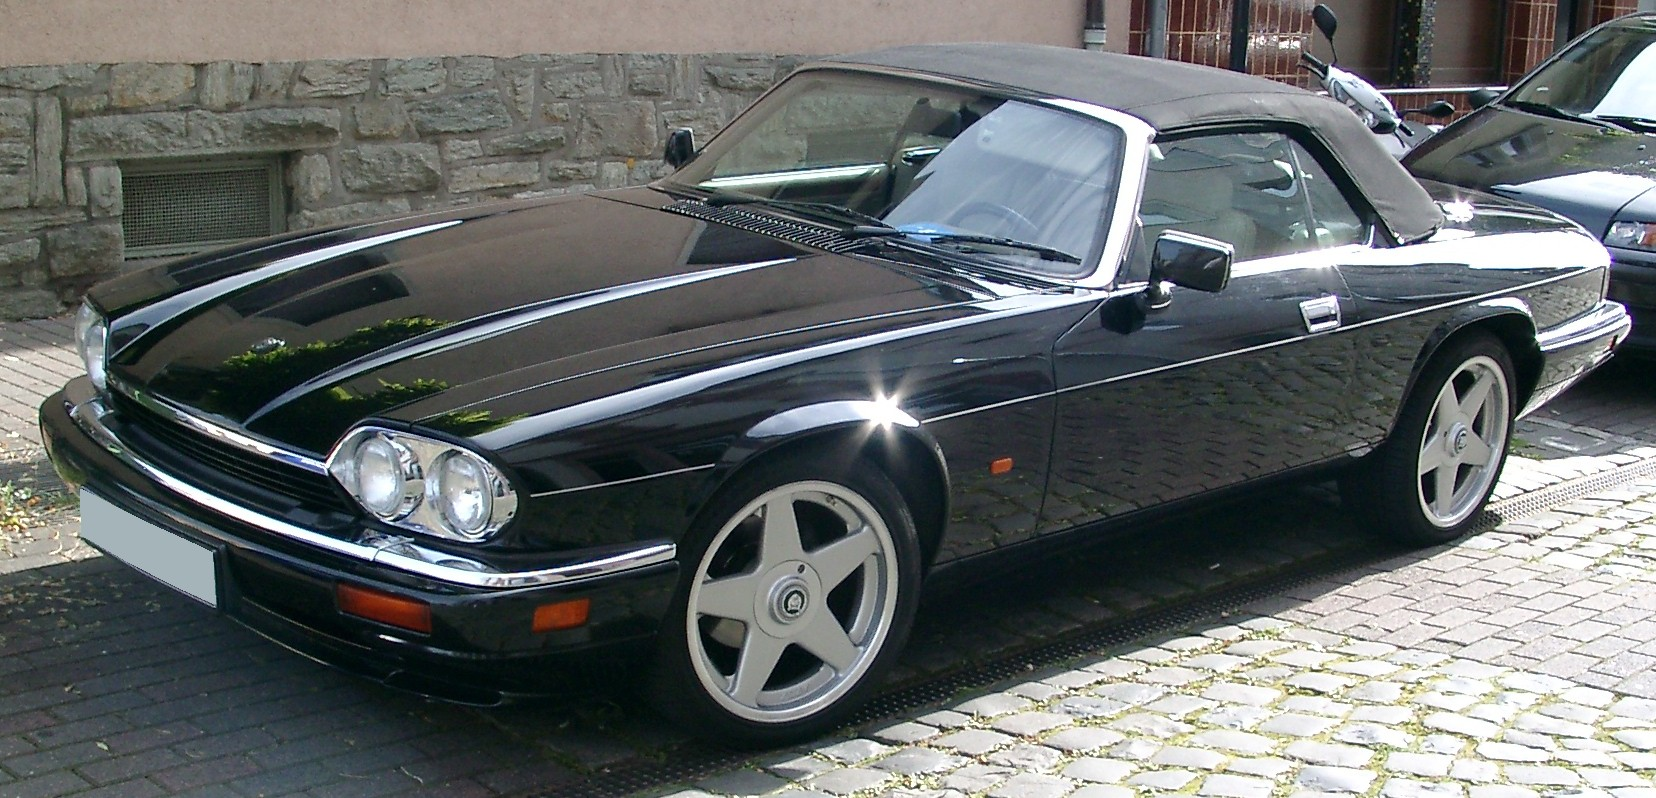 FileJaguar XJS Cabrio front 20070920jpg  Wikimedia Commons